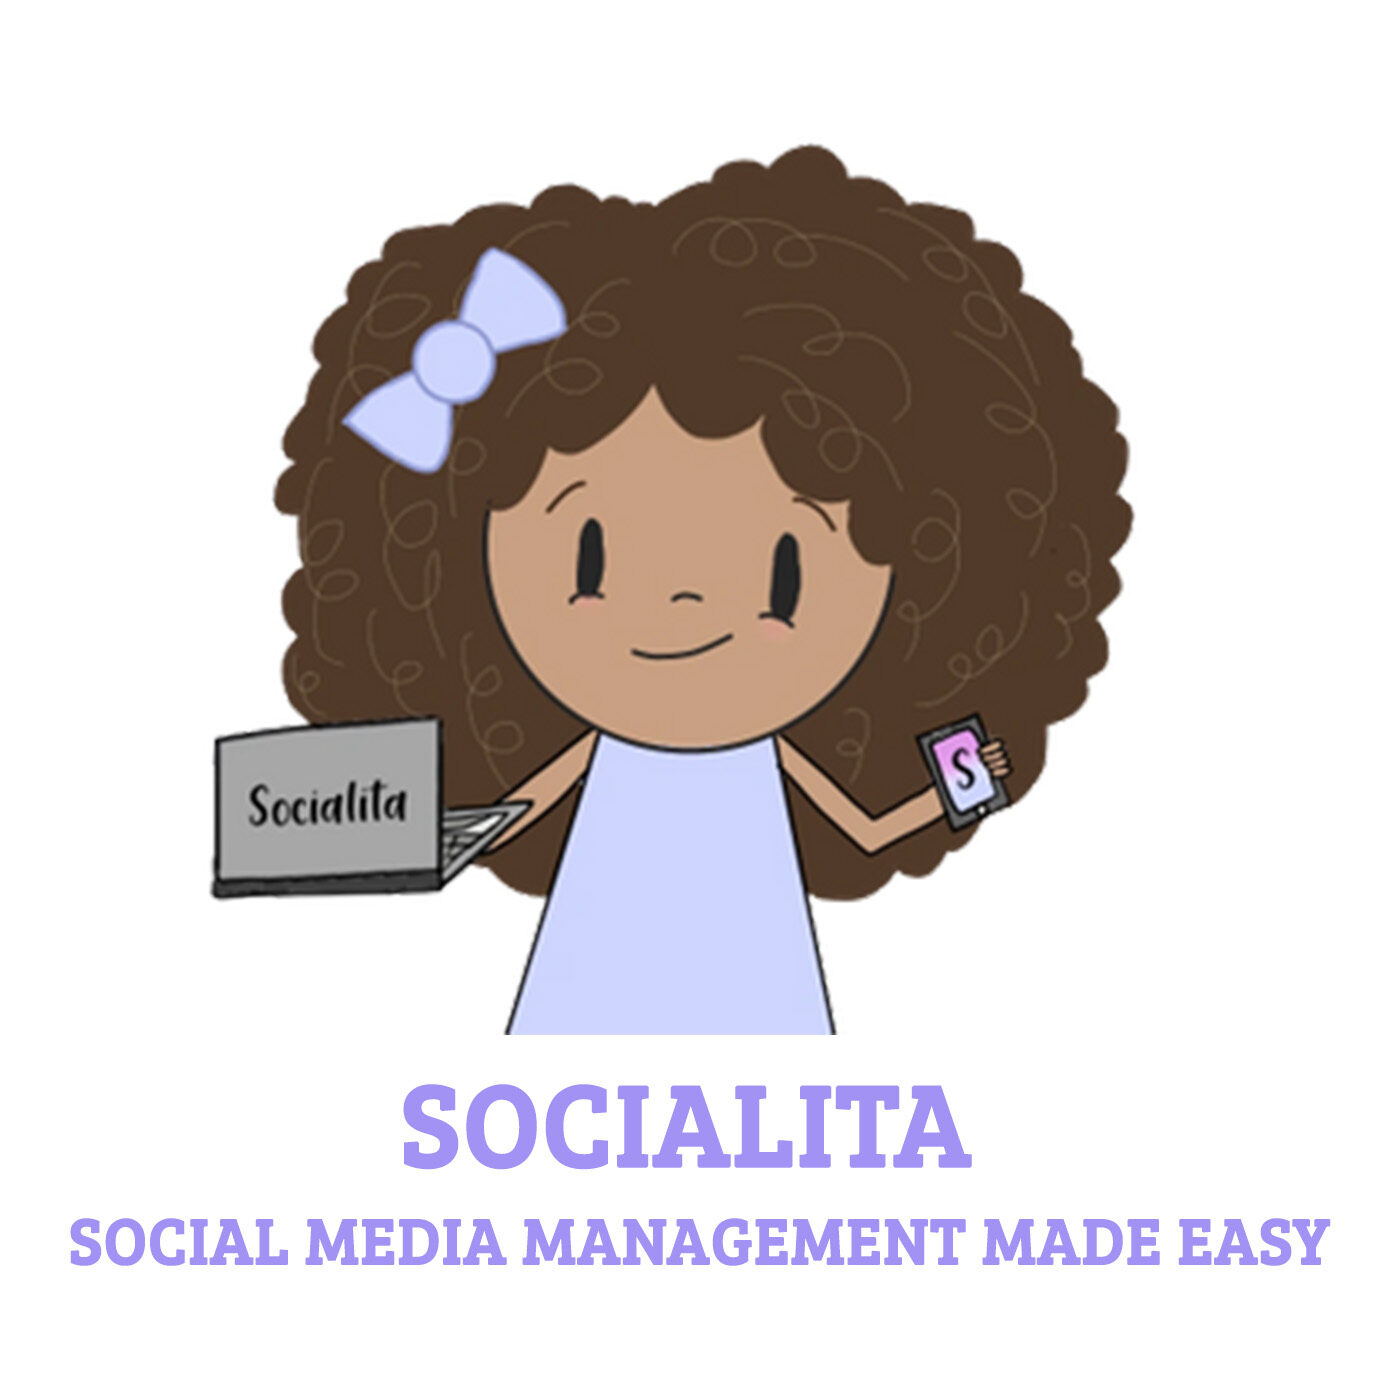 SOCIALITA - SOCIAL MEDIA MANAGEMENT MADE EASY